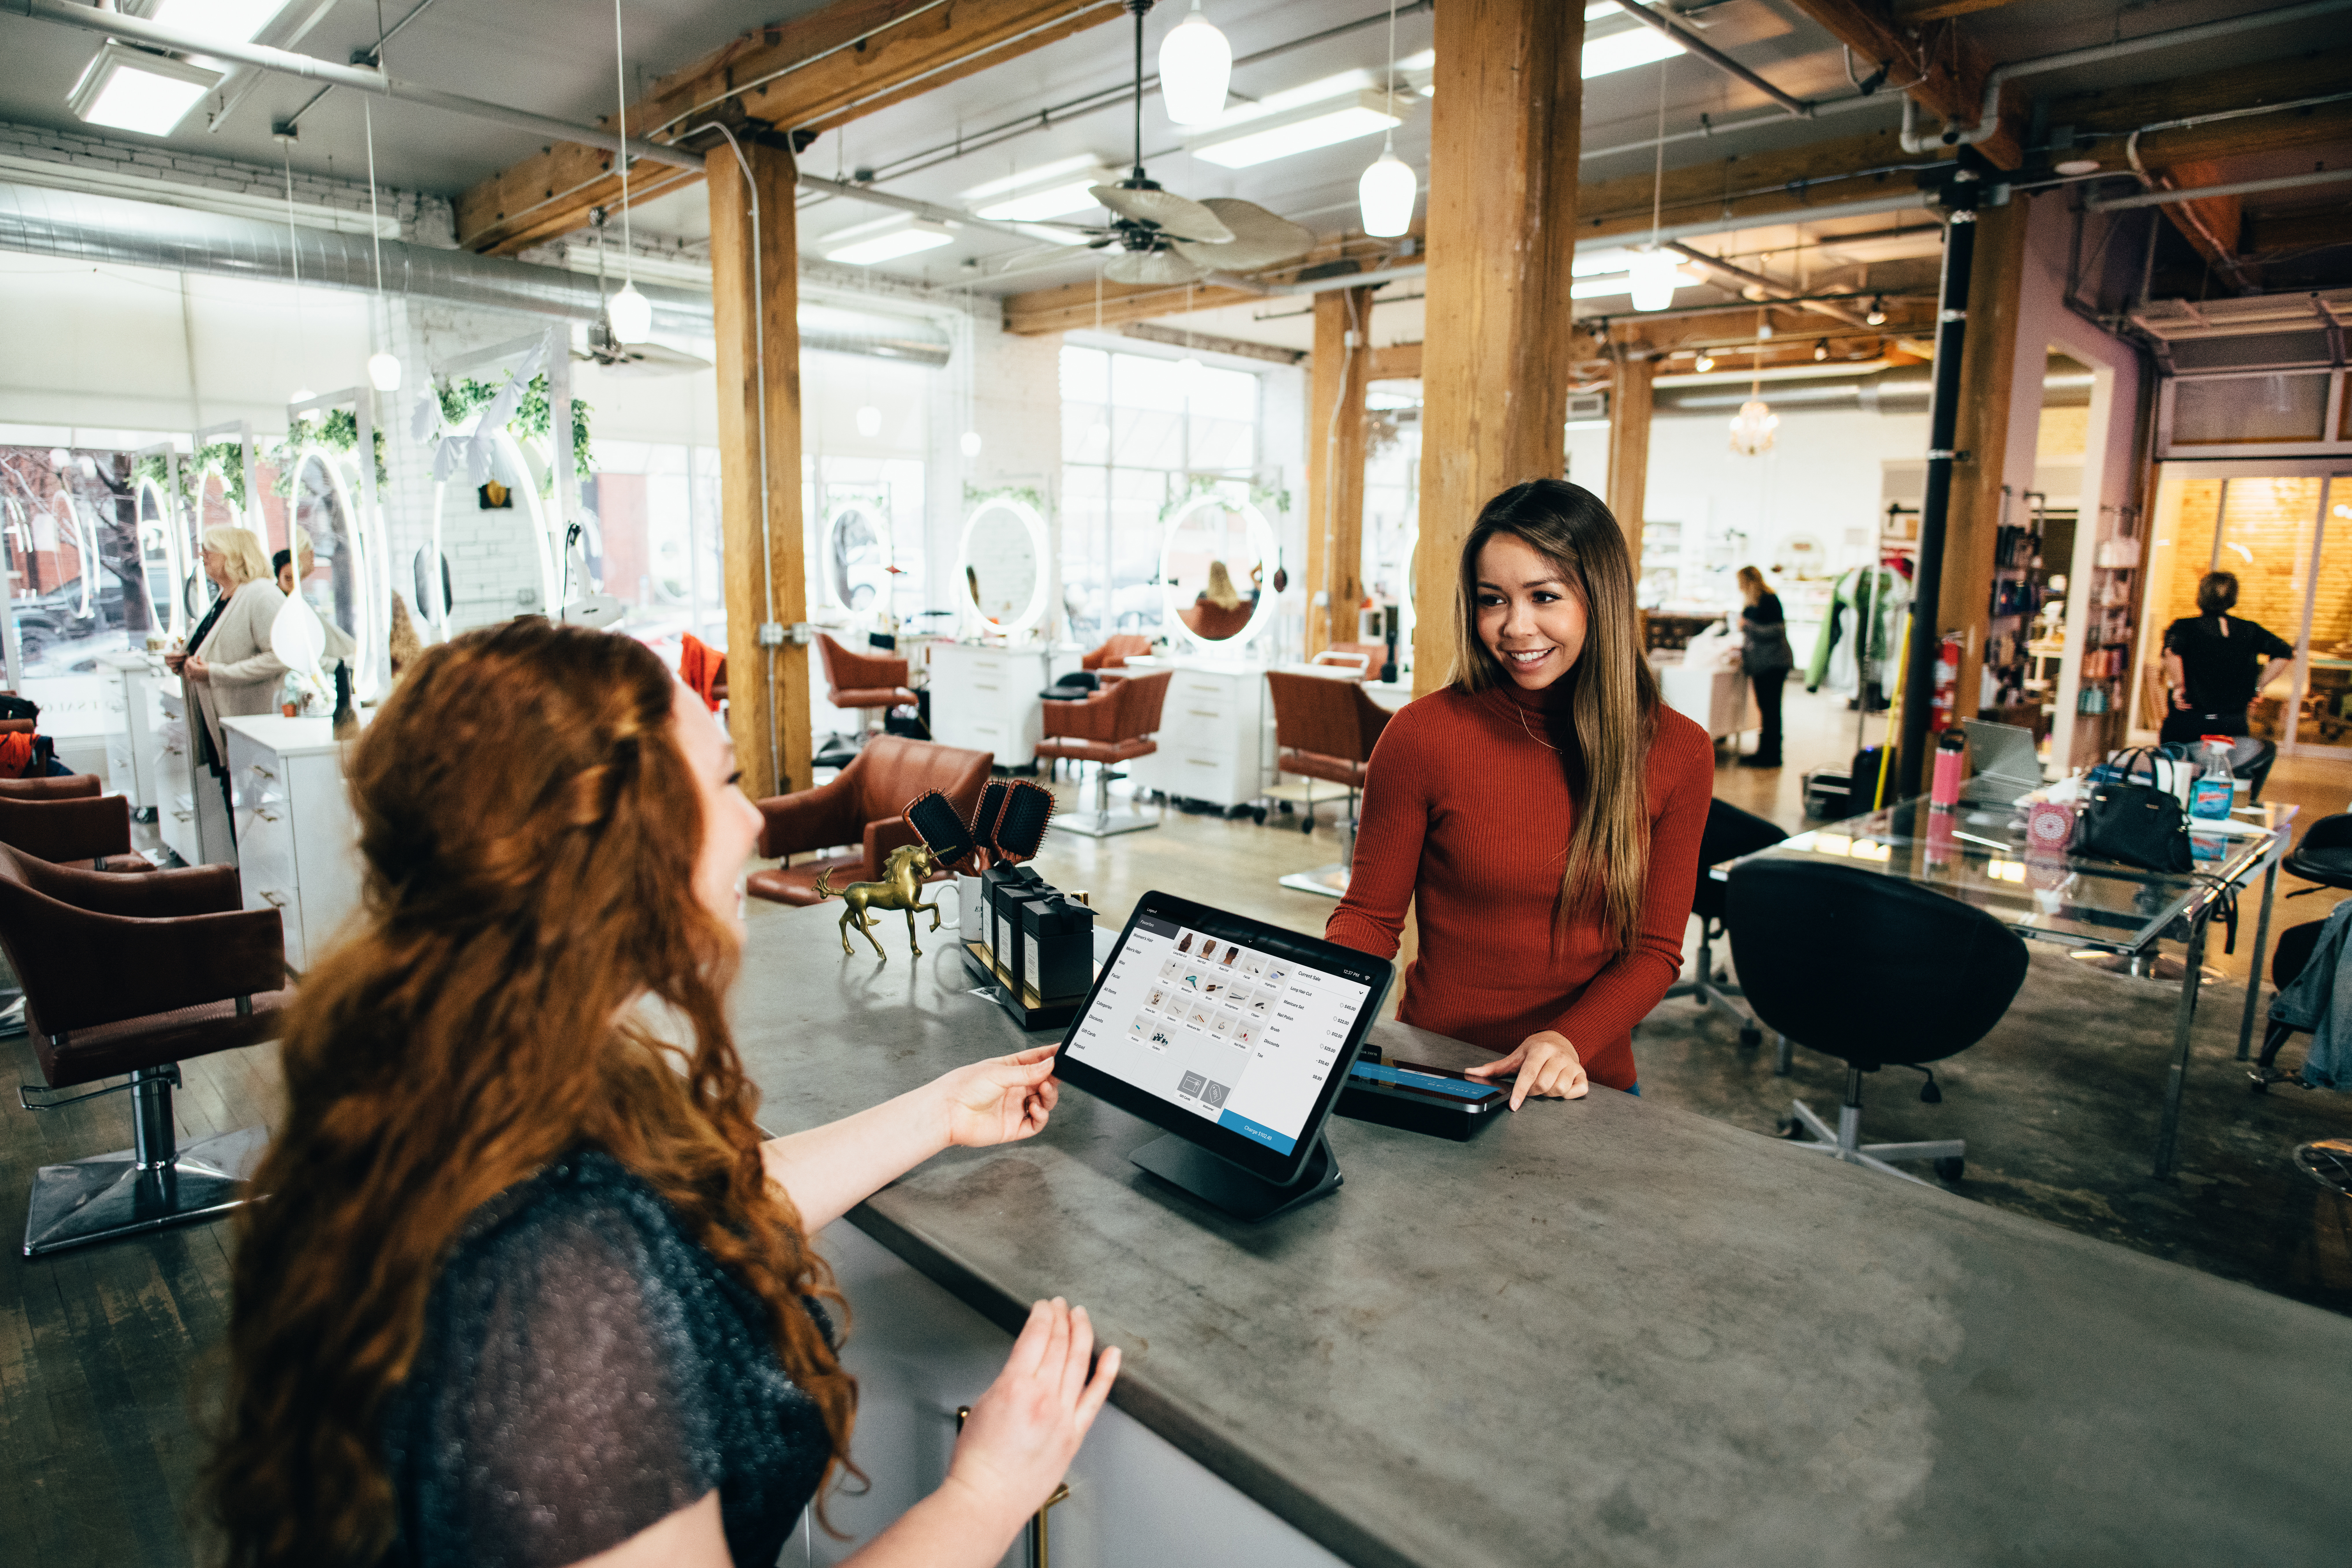 Sales Incentives Can Make a Big Difference in Small Businesses